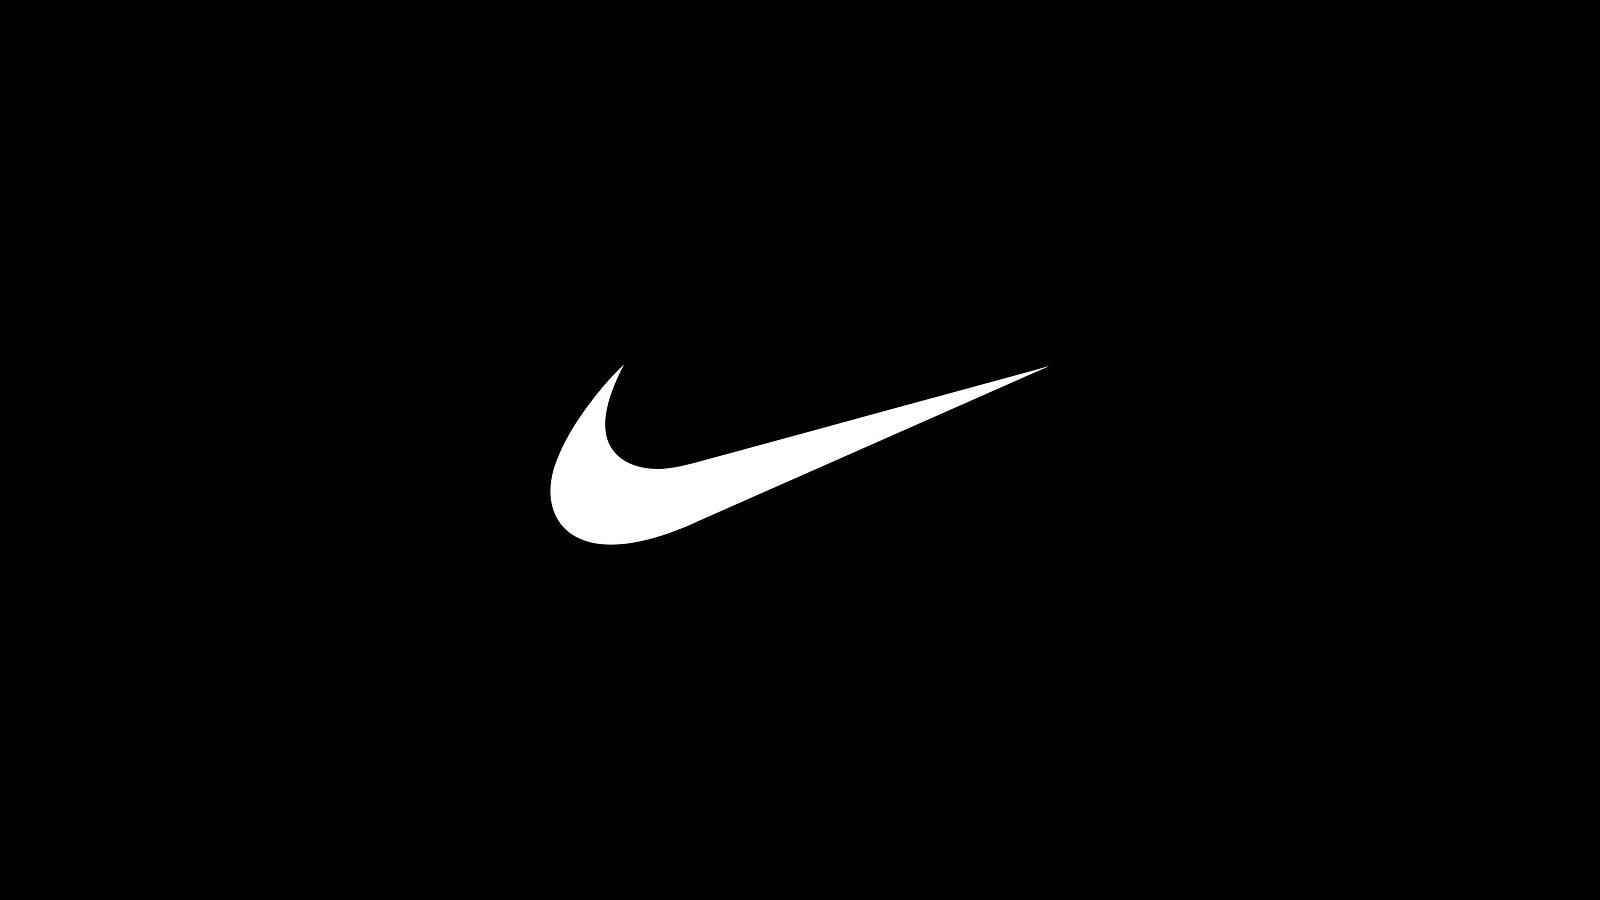 Nike Changes Slogan In Light Of Recent Events